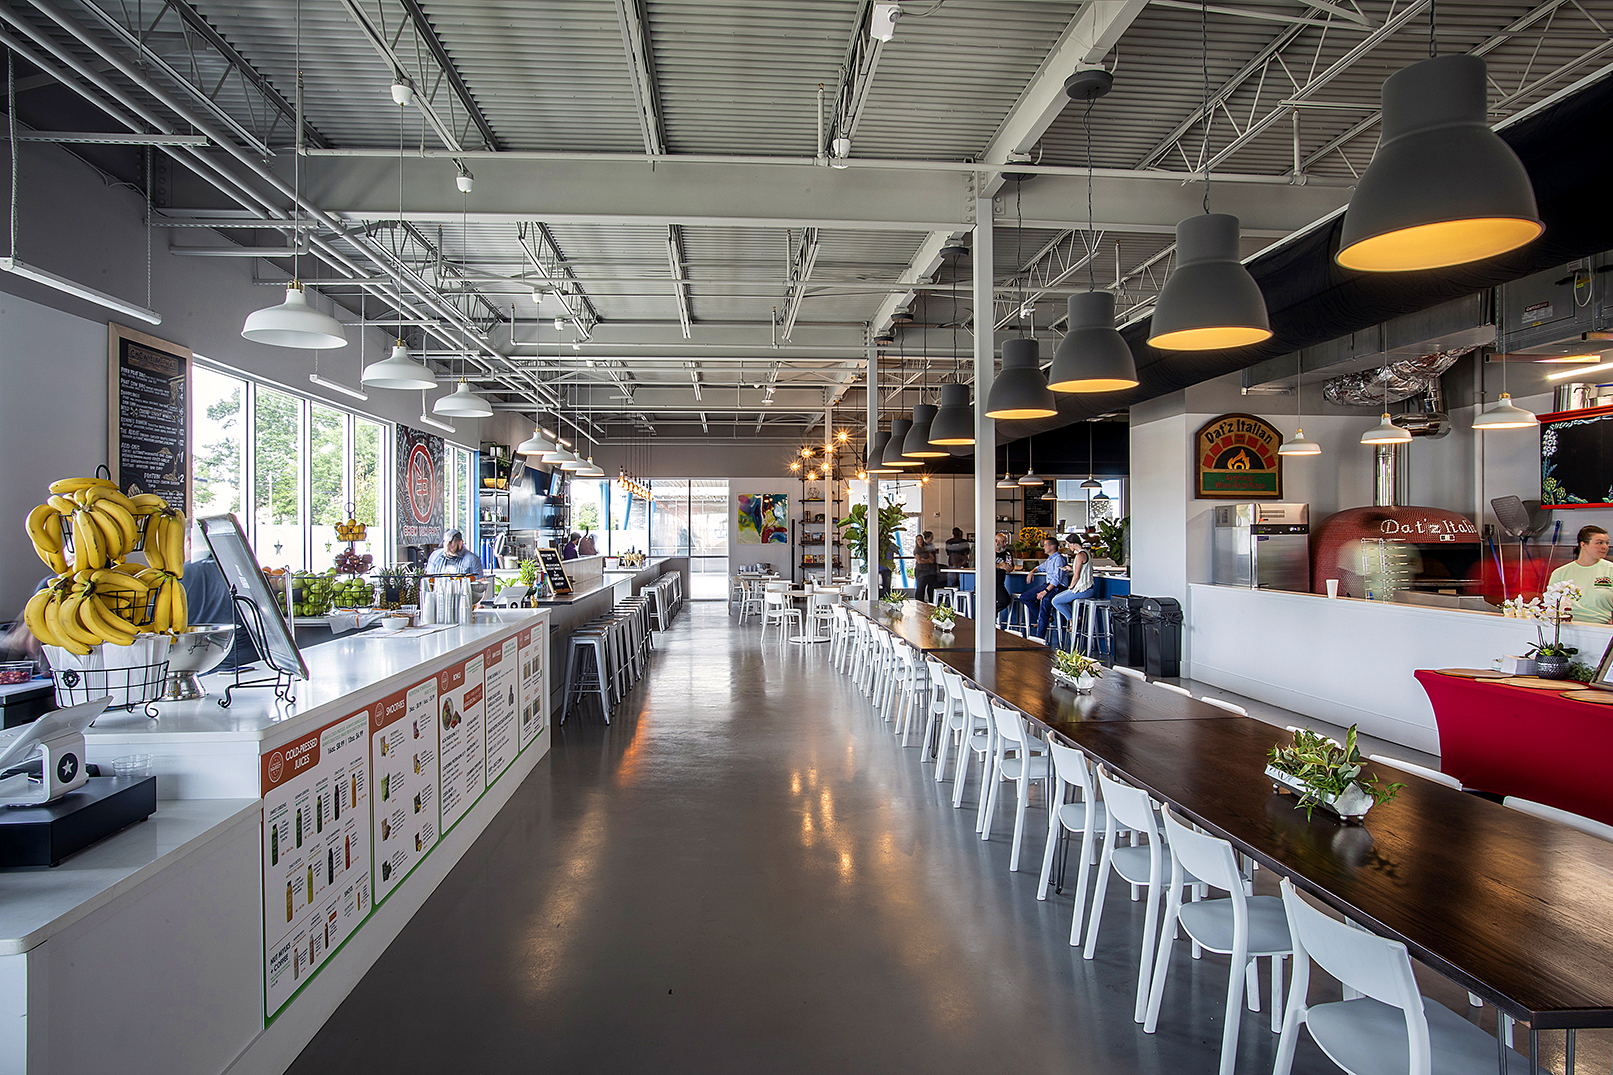 CounterspaceBR leaving White Star Market, shifting focus to Southdowns